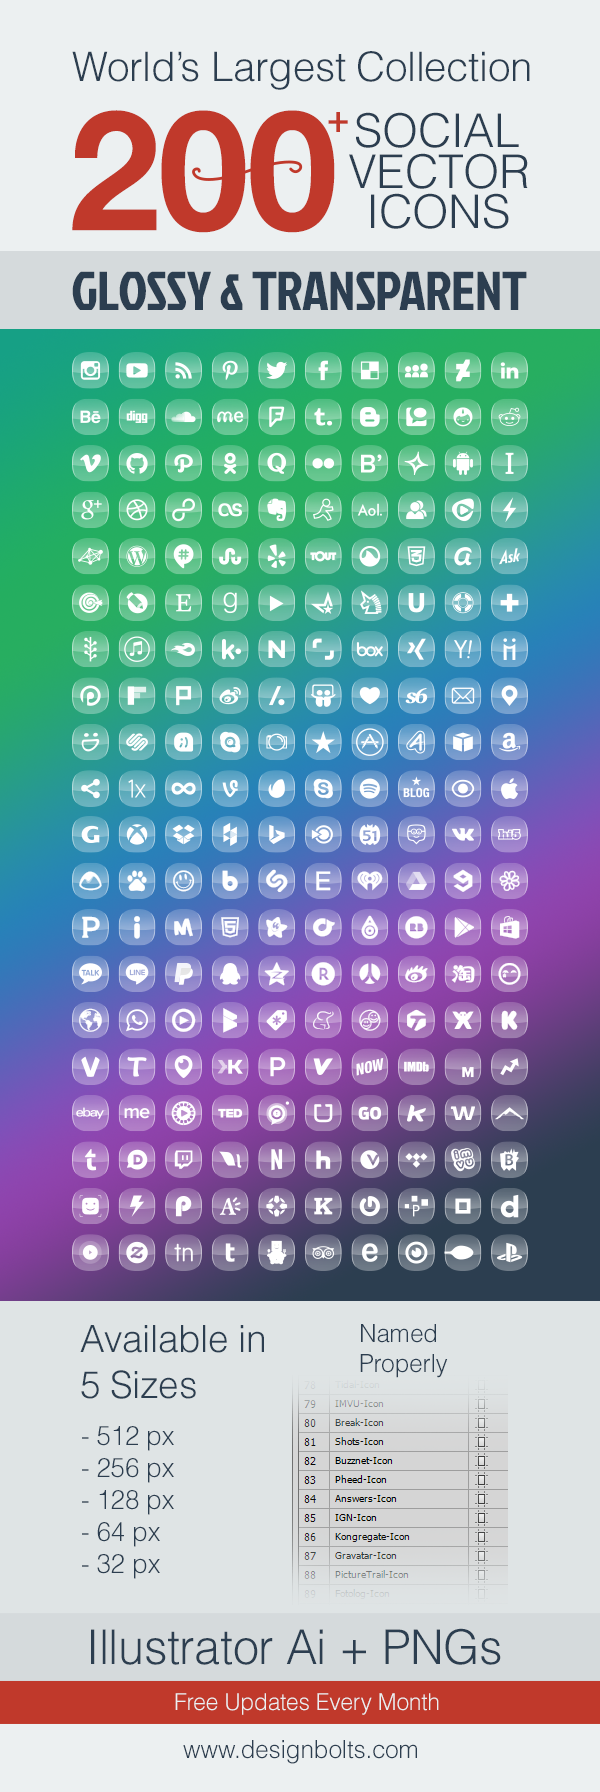 200+ Glossy & Transparent Social Media Icons